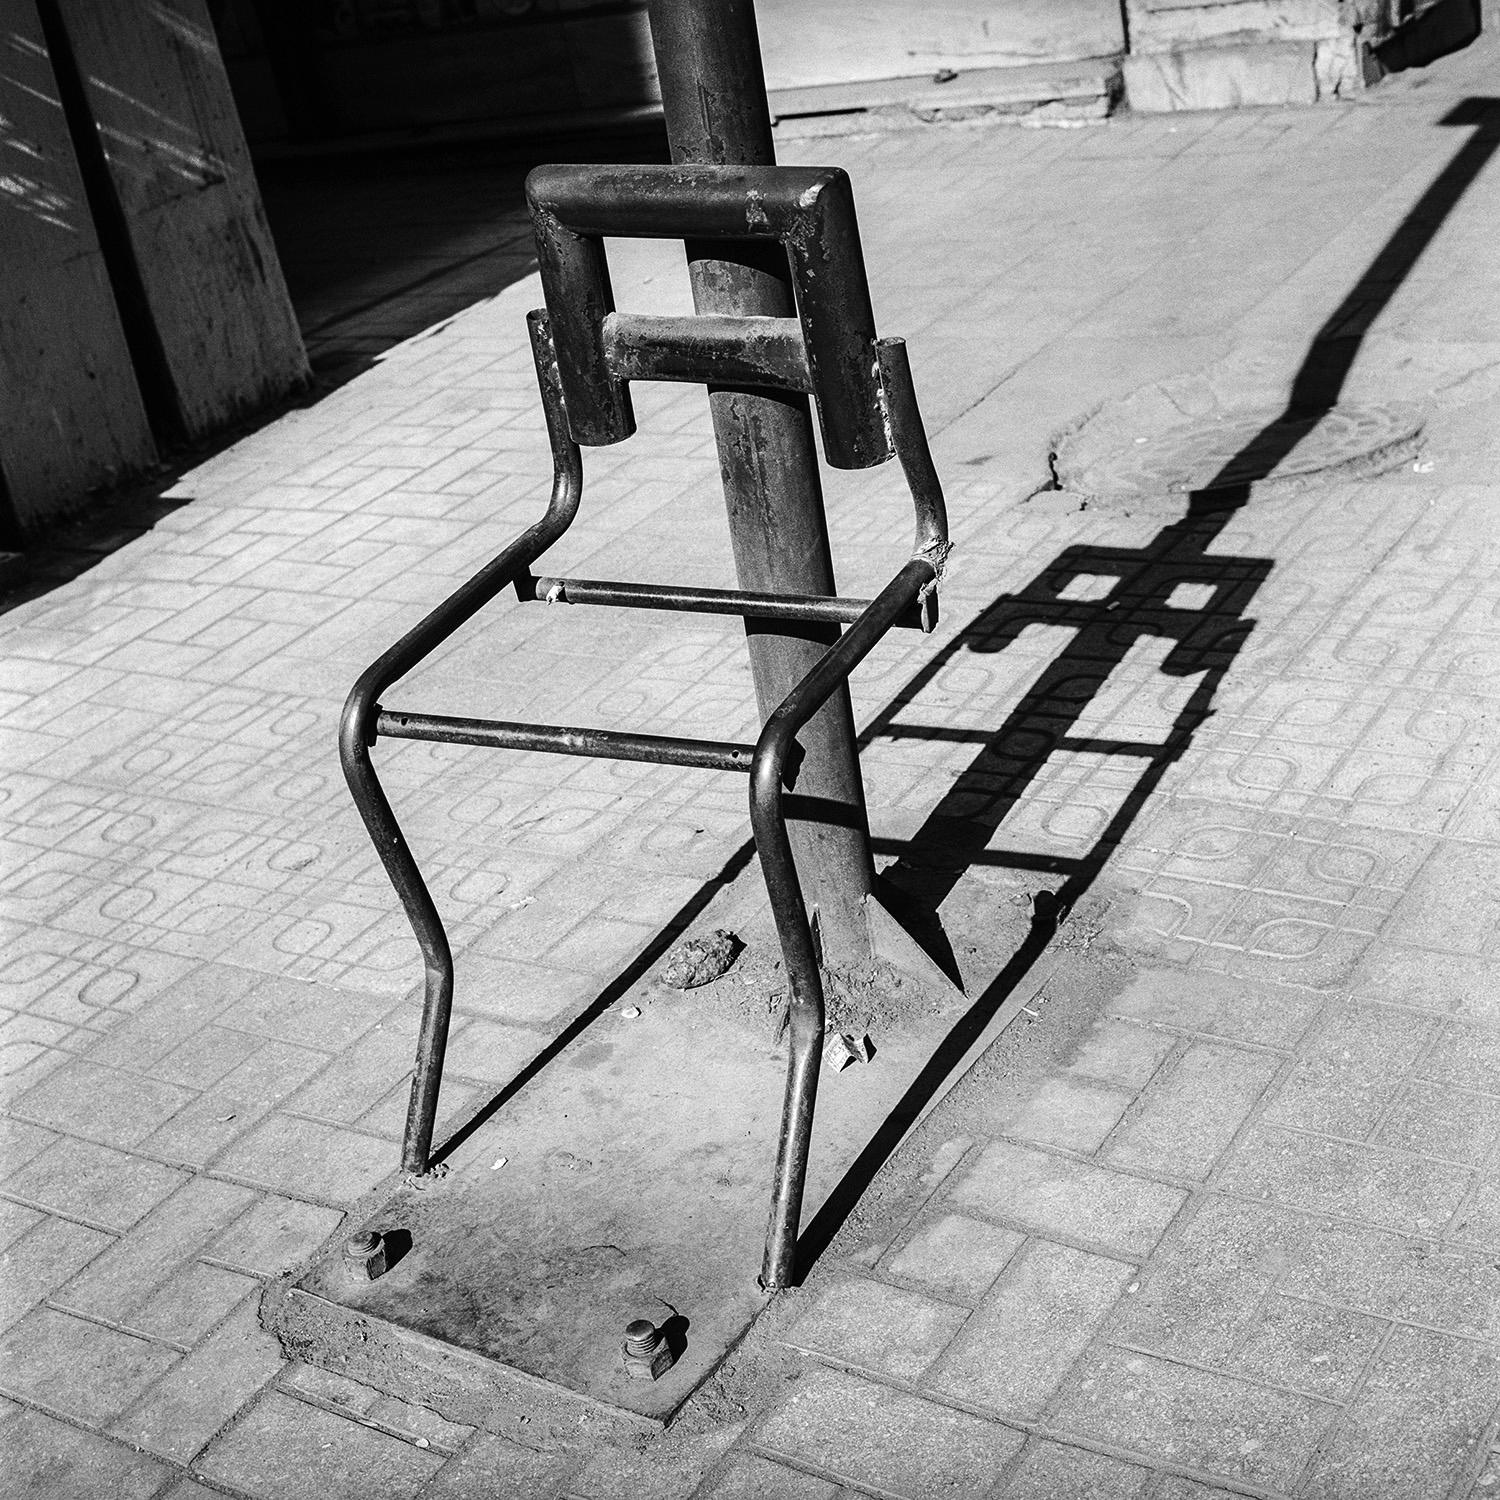 Chair No. 44